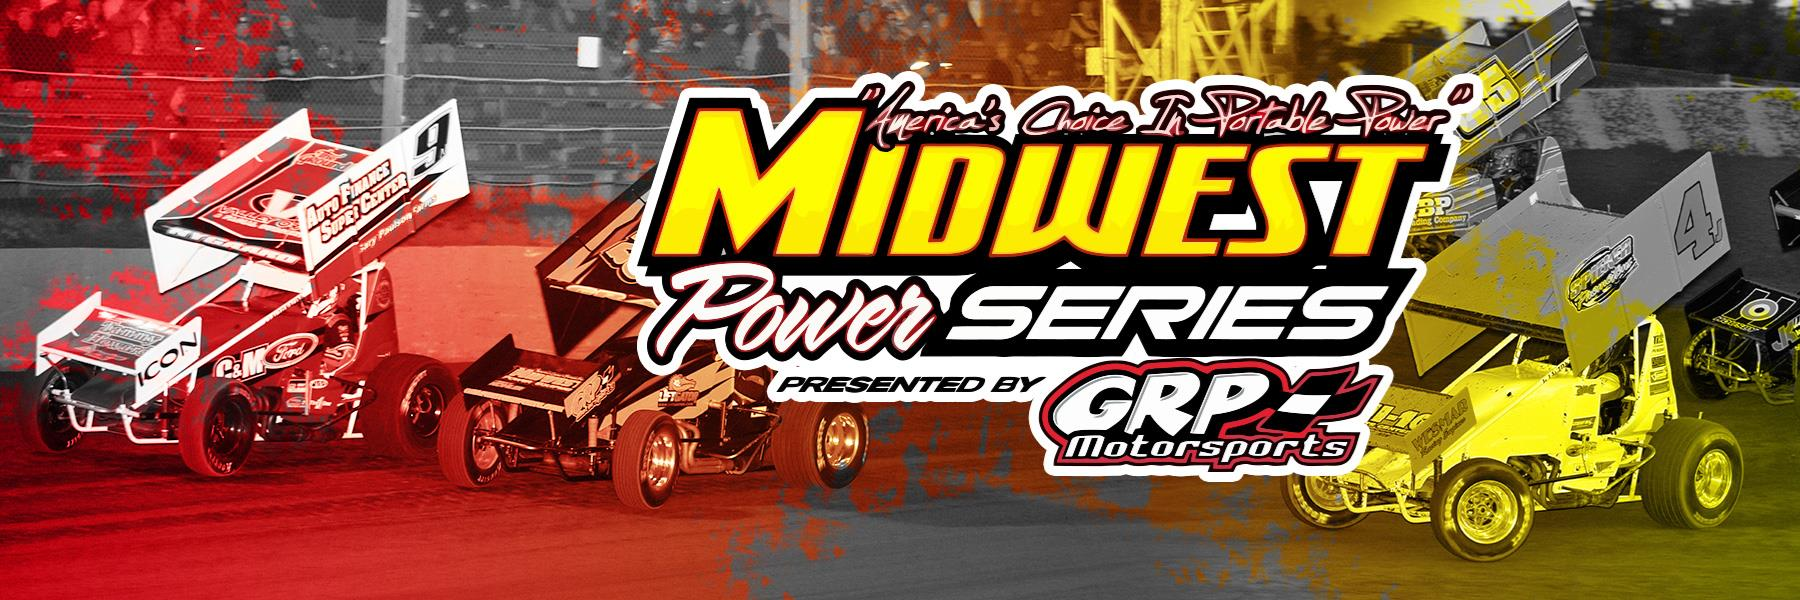 Midwest Power Series